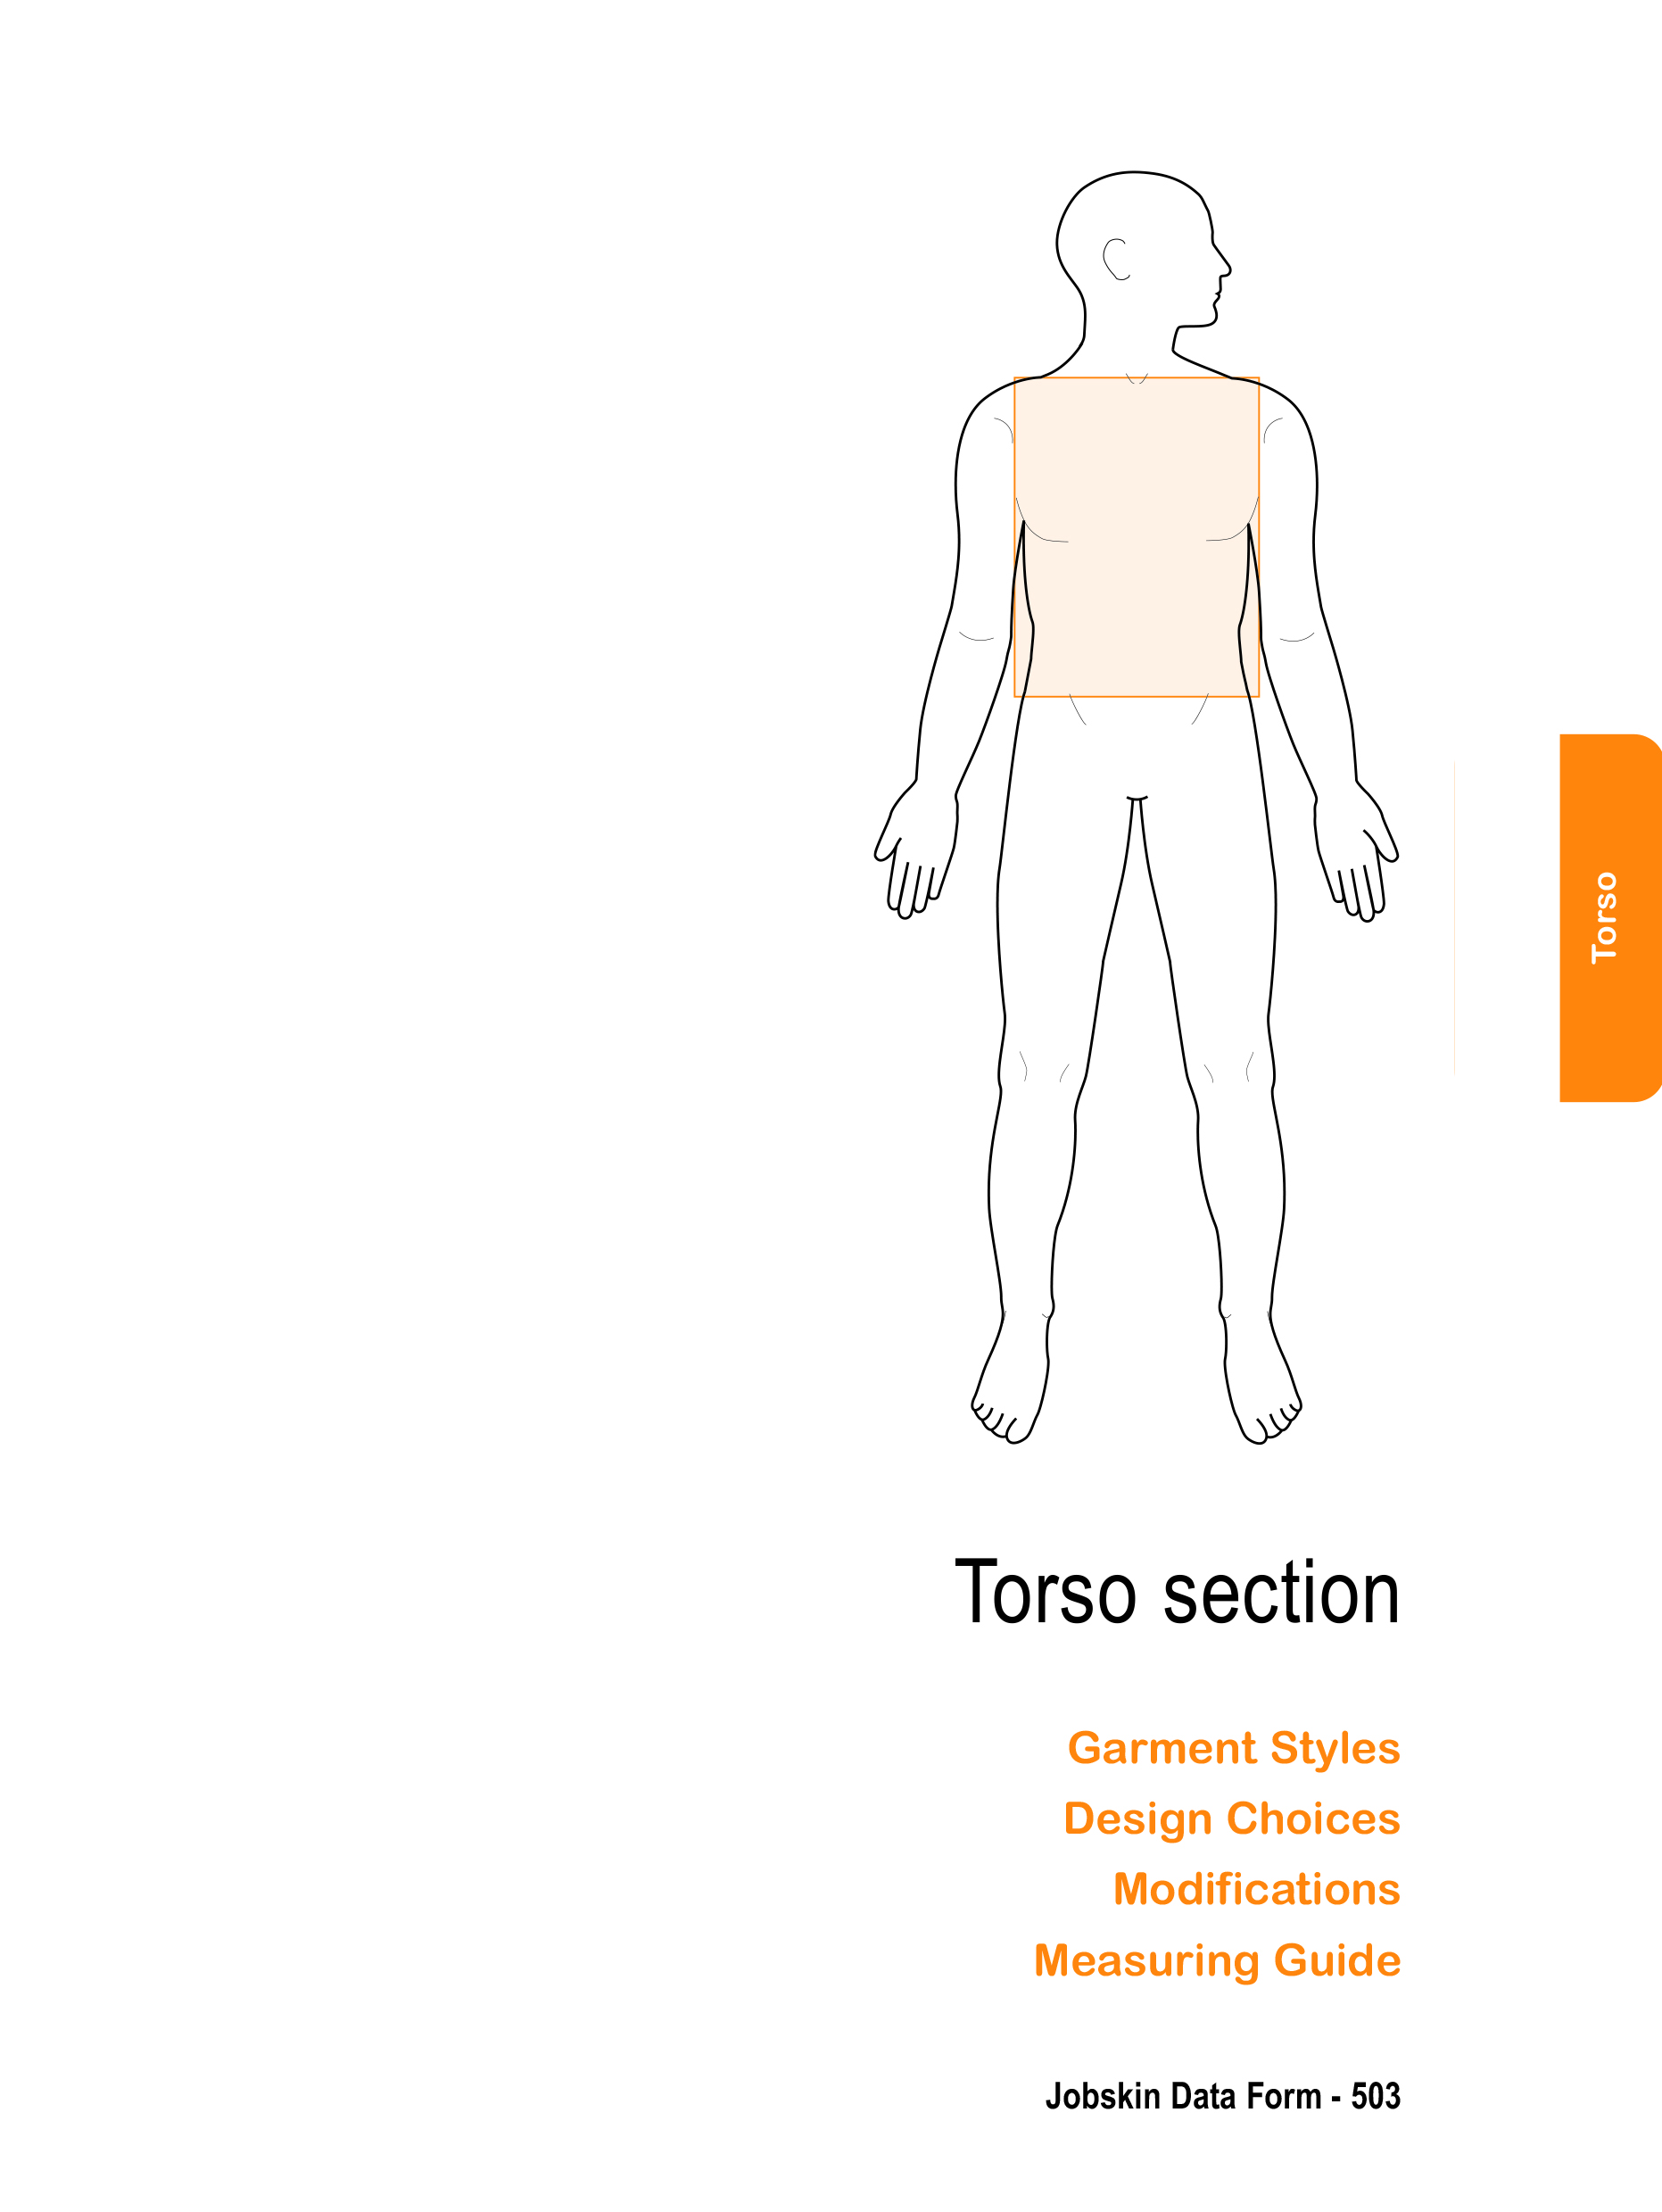 Torso how to measure section